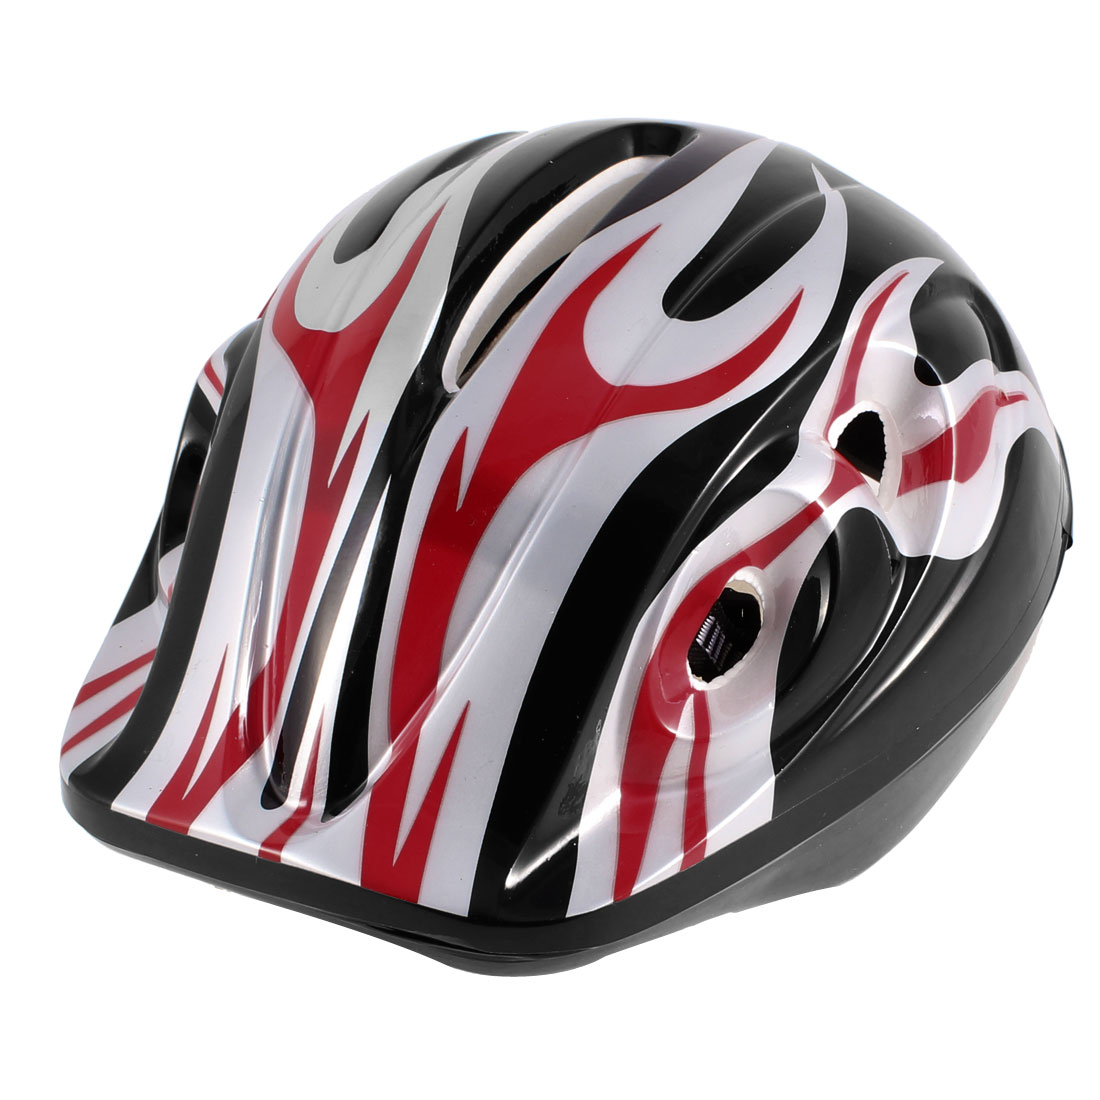 Flame Pattern Roller Skating Head Protection Sports Helmet Red Gray for Kids